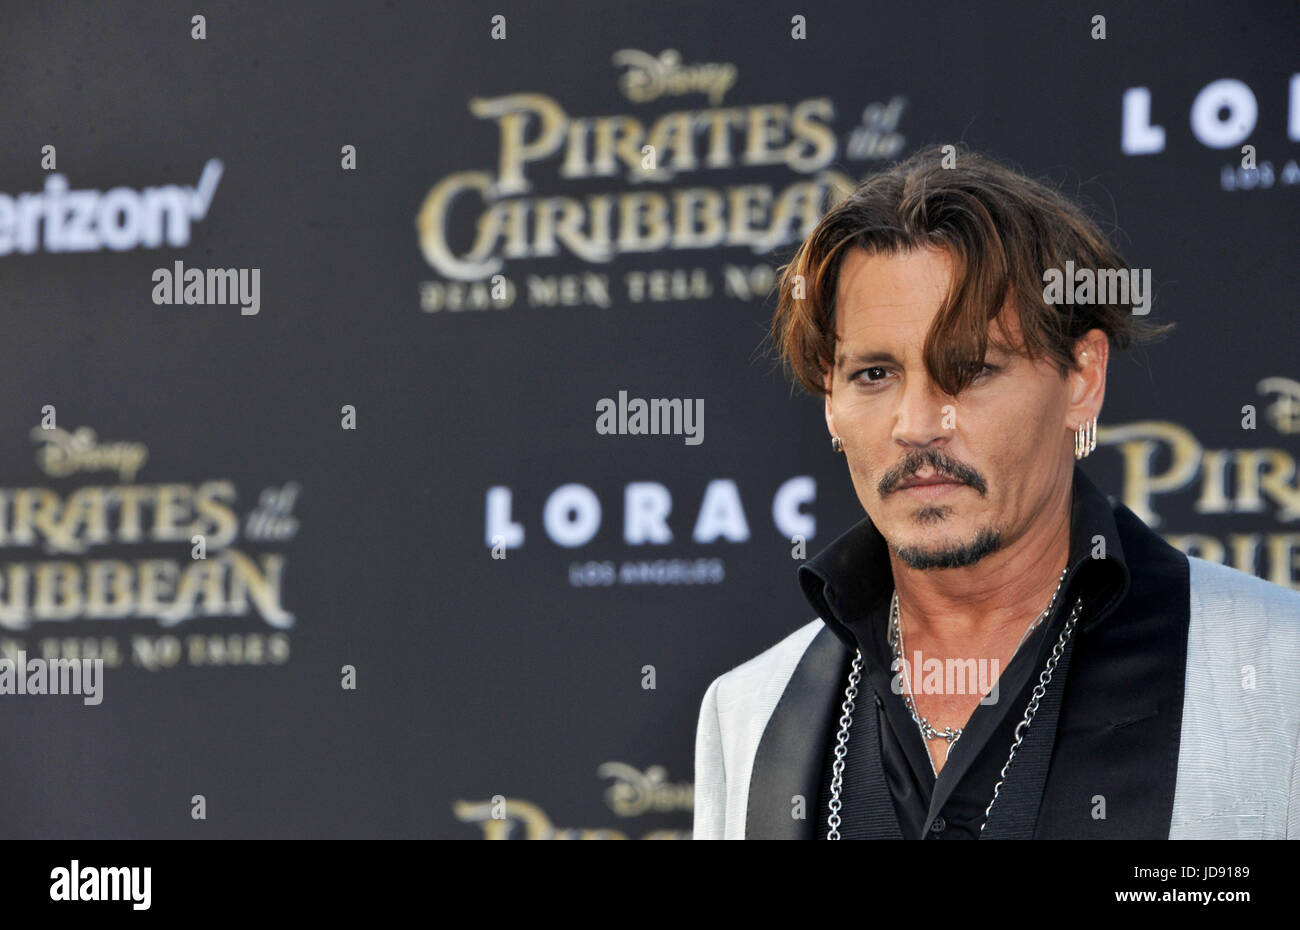 Premiere Pirates of The Caribbean Dead Men Tell No Tales Featuring: Johnny Depp Where: Los Angeles, California, - Stock Image